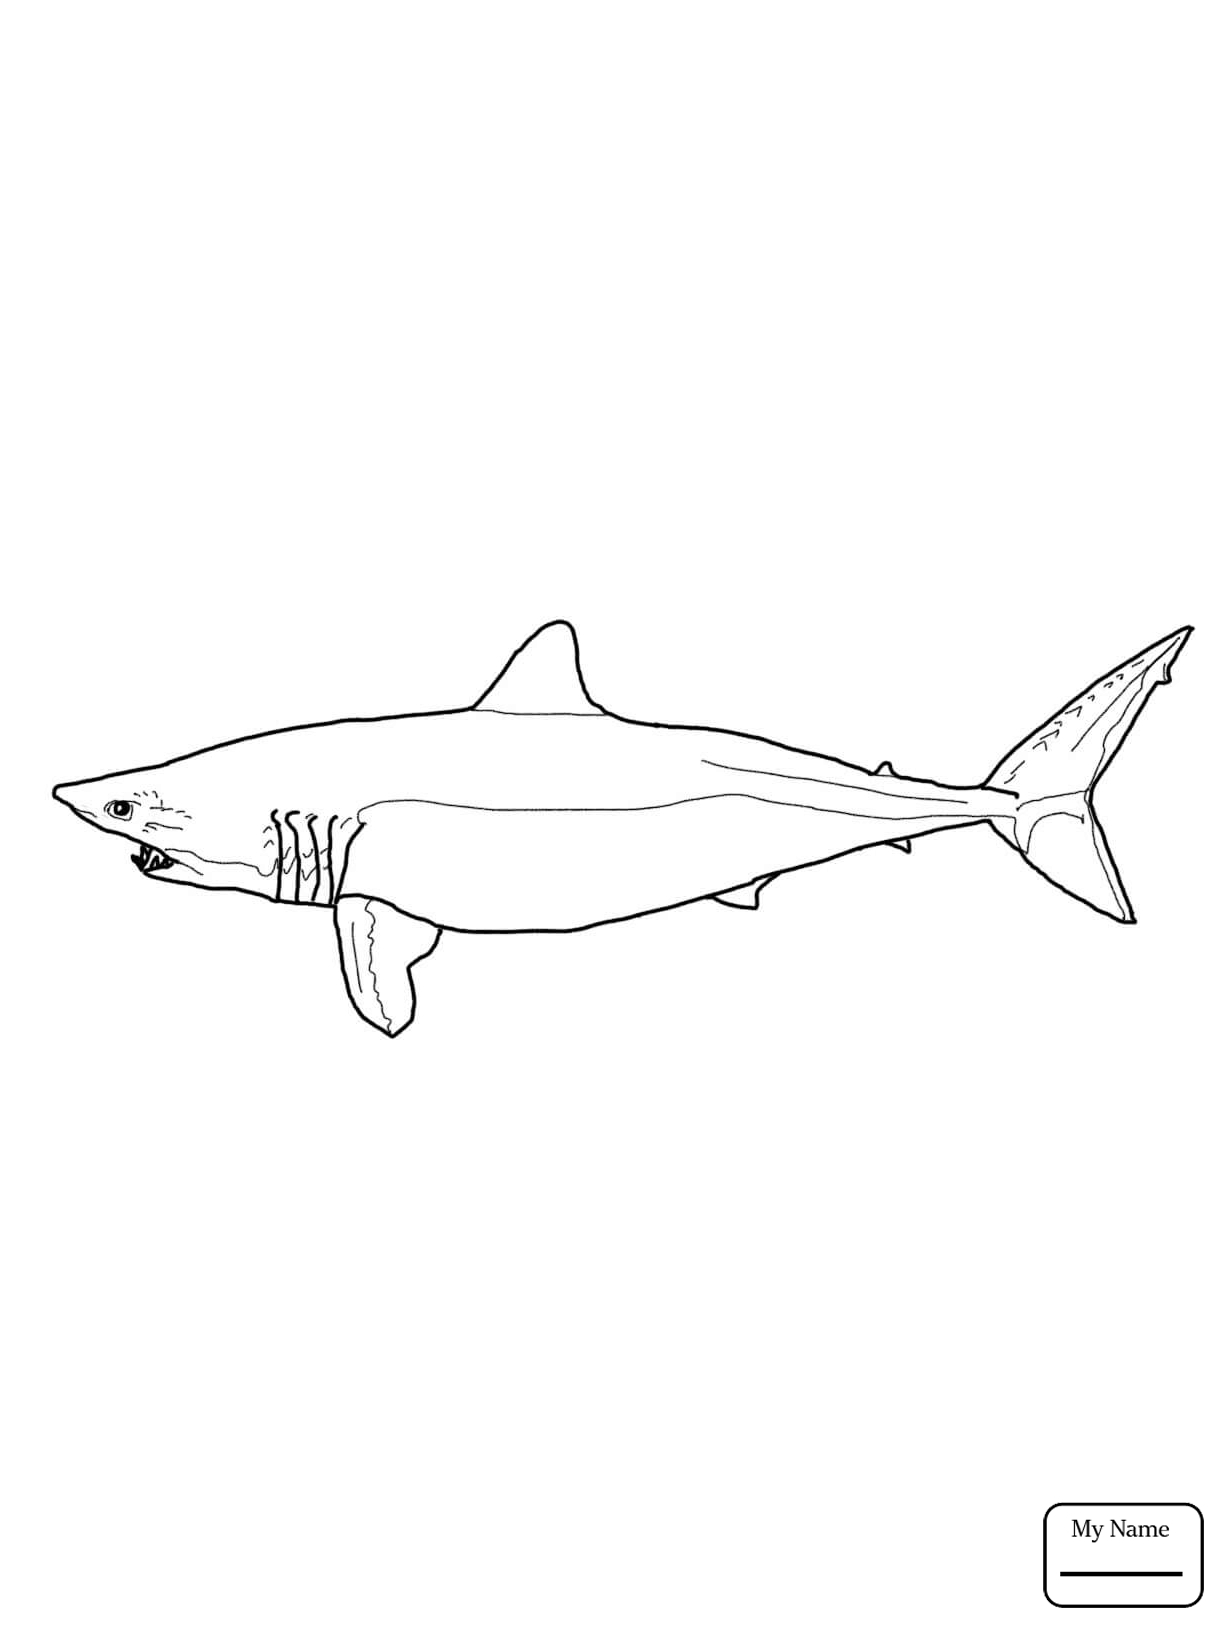 Hammerhead Shark Drawing at GetDrawings.com | Free for personal use ...